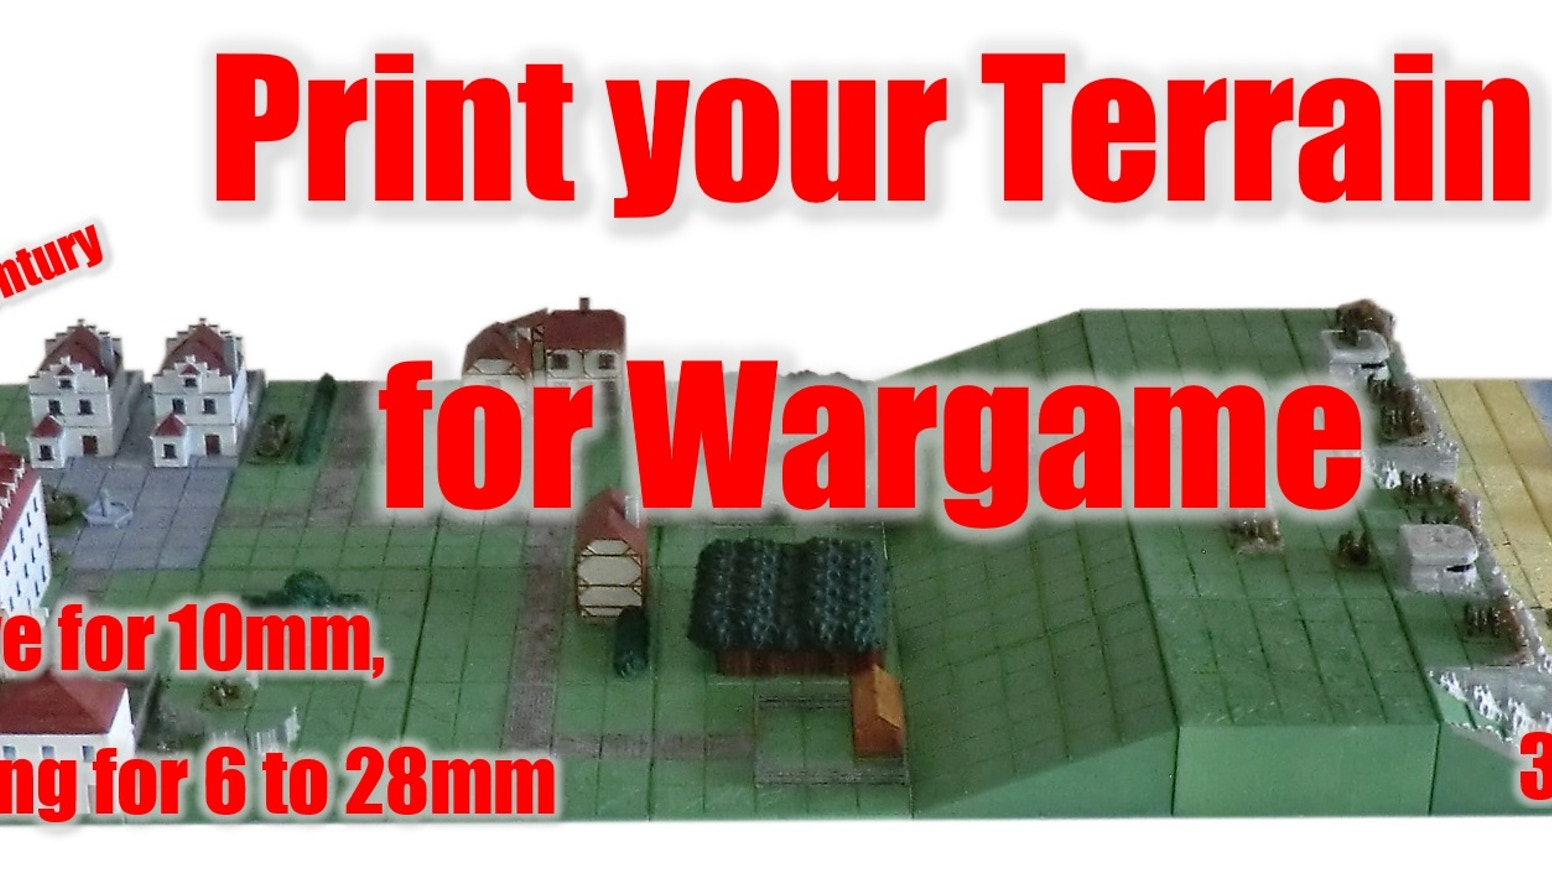 20th century terrain for Wargame - 3D stl files by Eskice